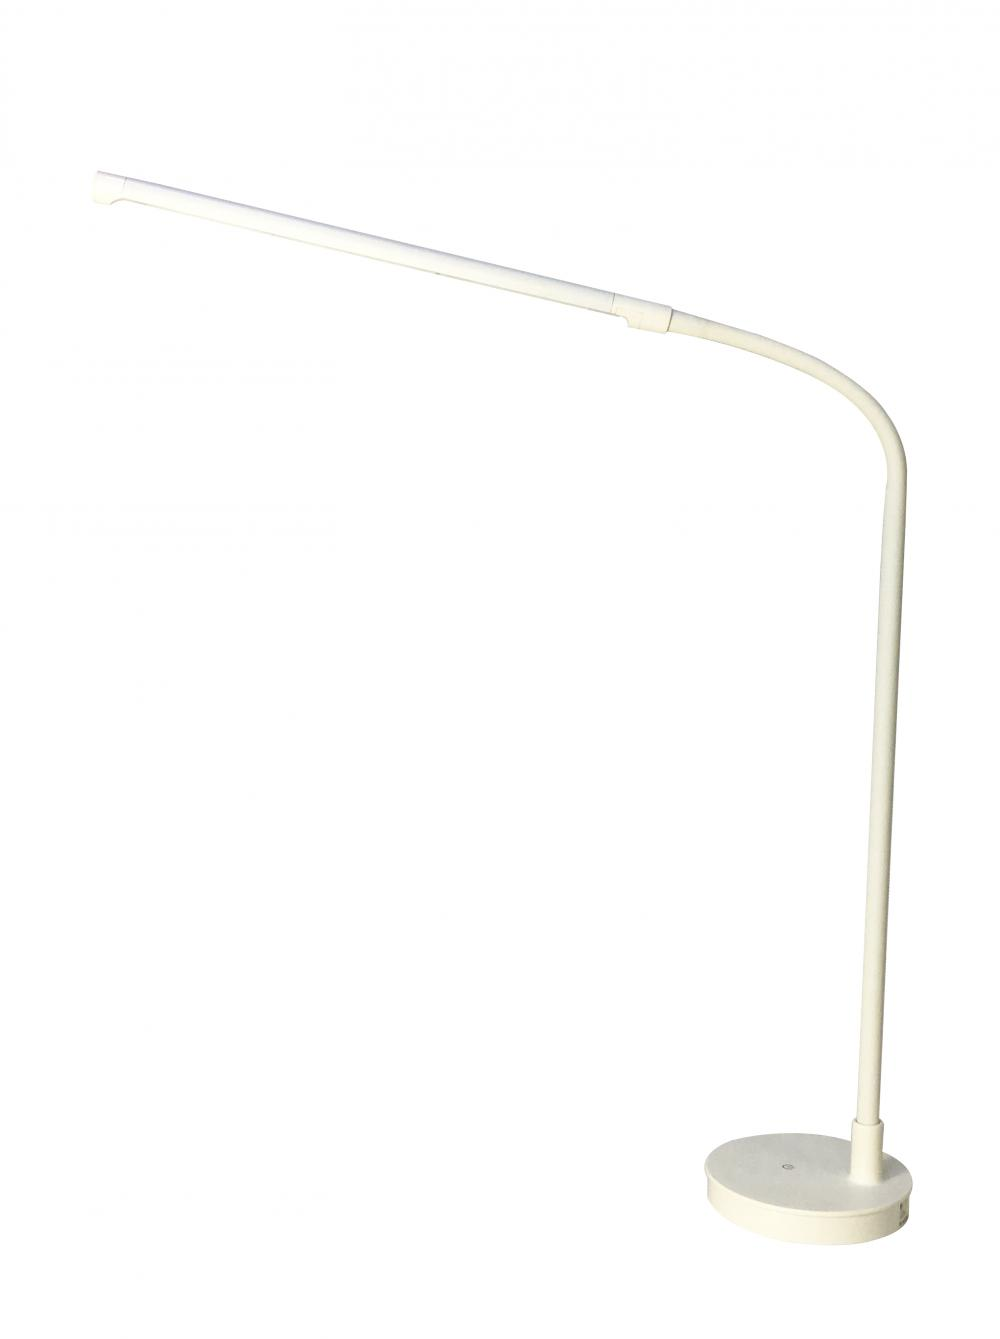 Mermory Function Gooseneck Table Lamp With USB Port